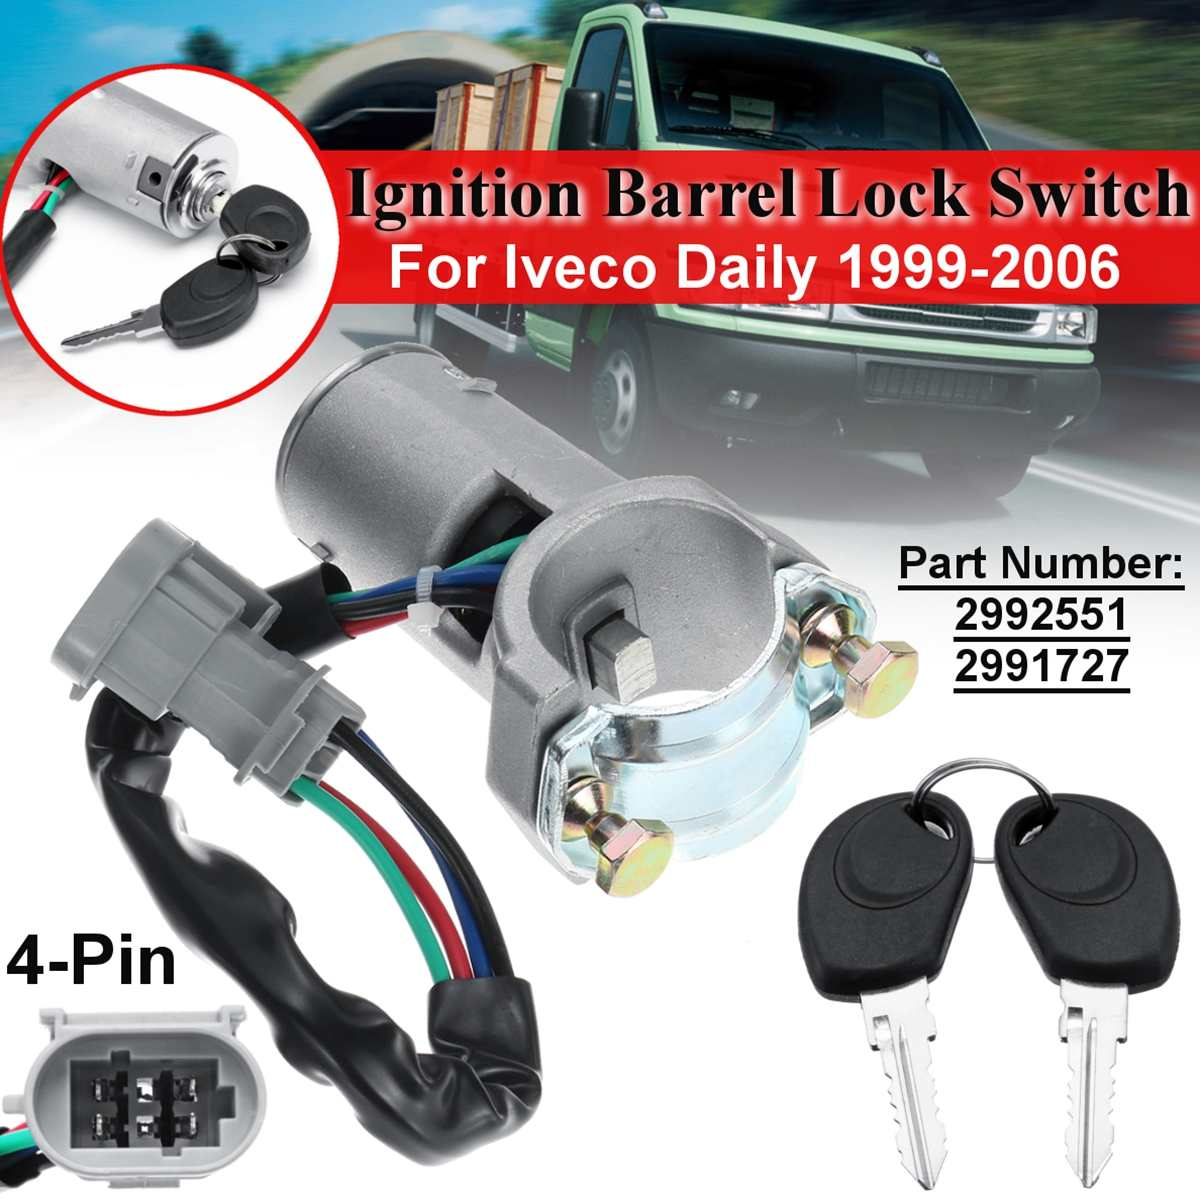 Switch Control Signal Sensor 2992551 2991727 Ignition Barrel Key Ignition Switch Barrel Door Lock Barrel For Iveco Daily 2000-2006 Door Lock Set Automobiles & Motorcycles